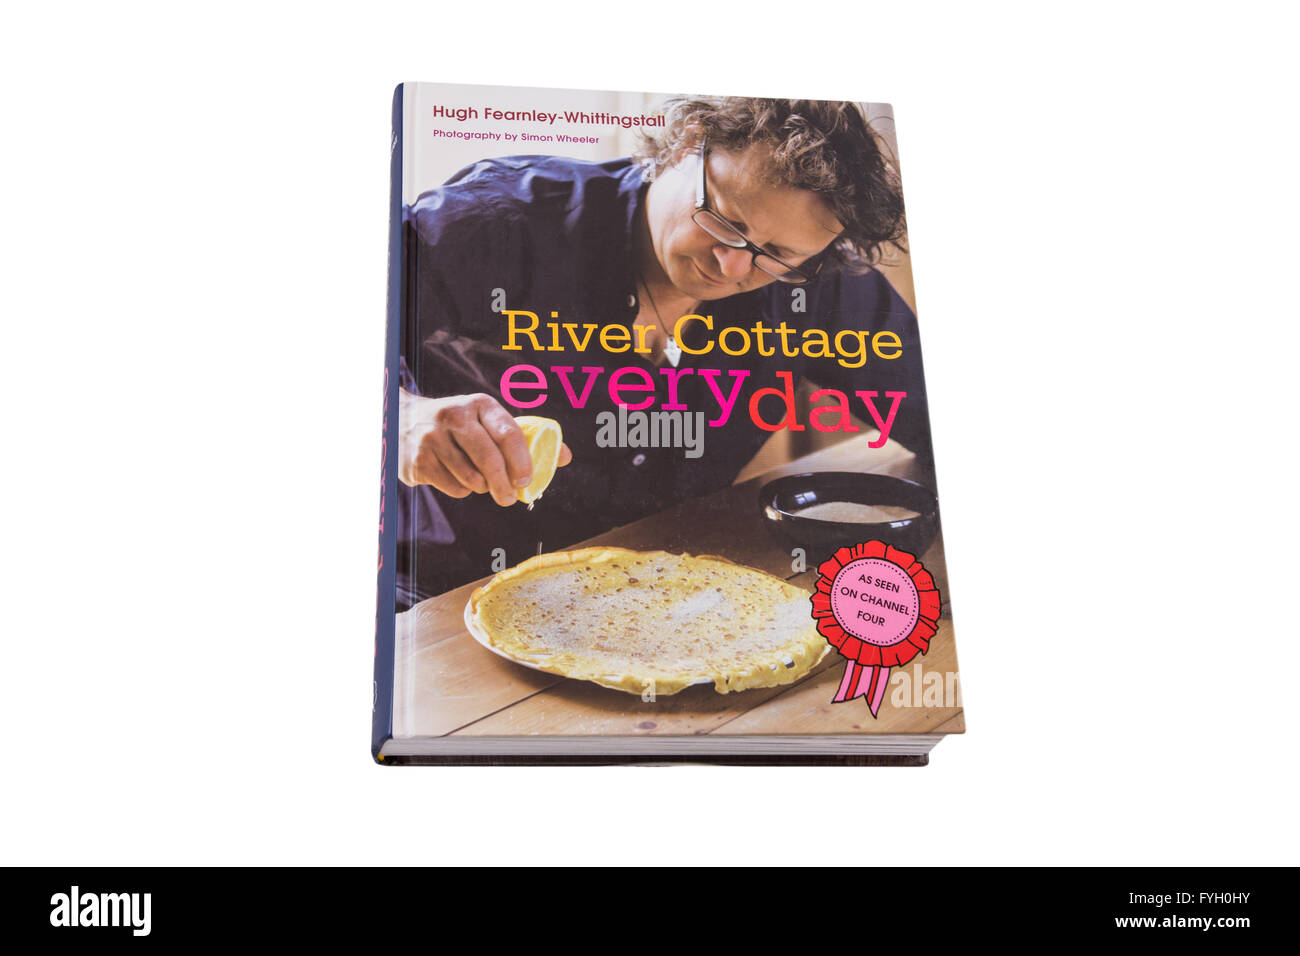 River Cottage Every Day by Hugh Fearnley-Whittingstall - Stock Image